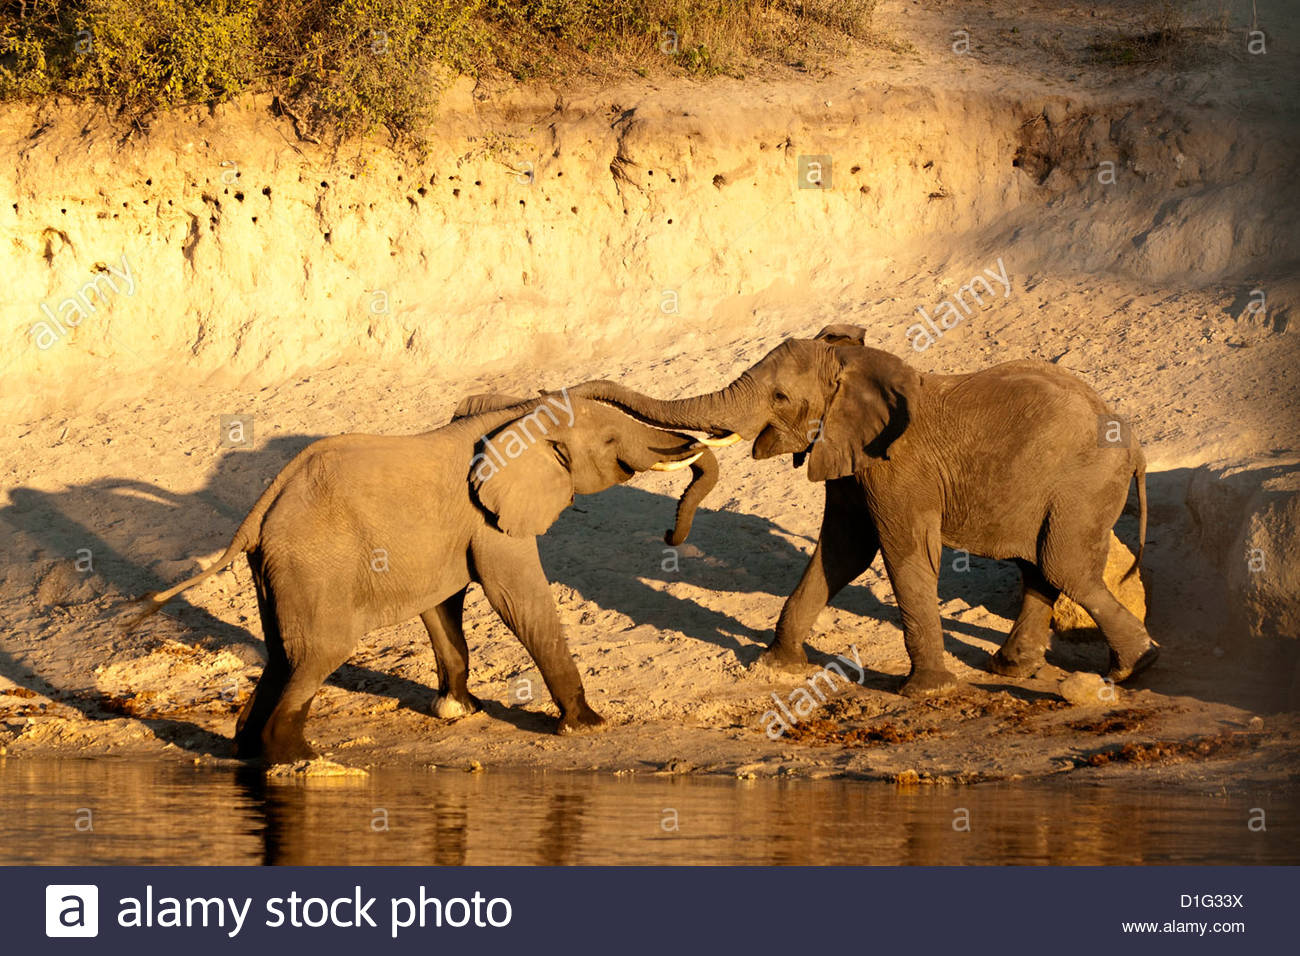 Two African elephants (Loxodonta africana) touching trunks on a riverbank, Chobe River, eastern Caprivi Strip, Namibia, - Stock Image